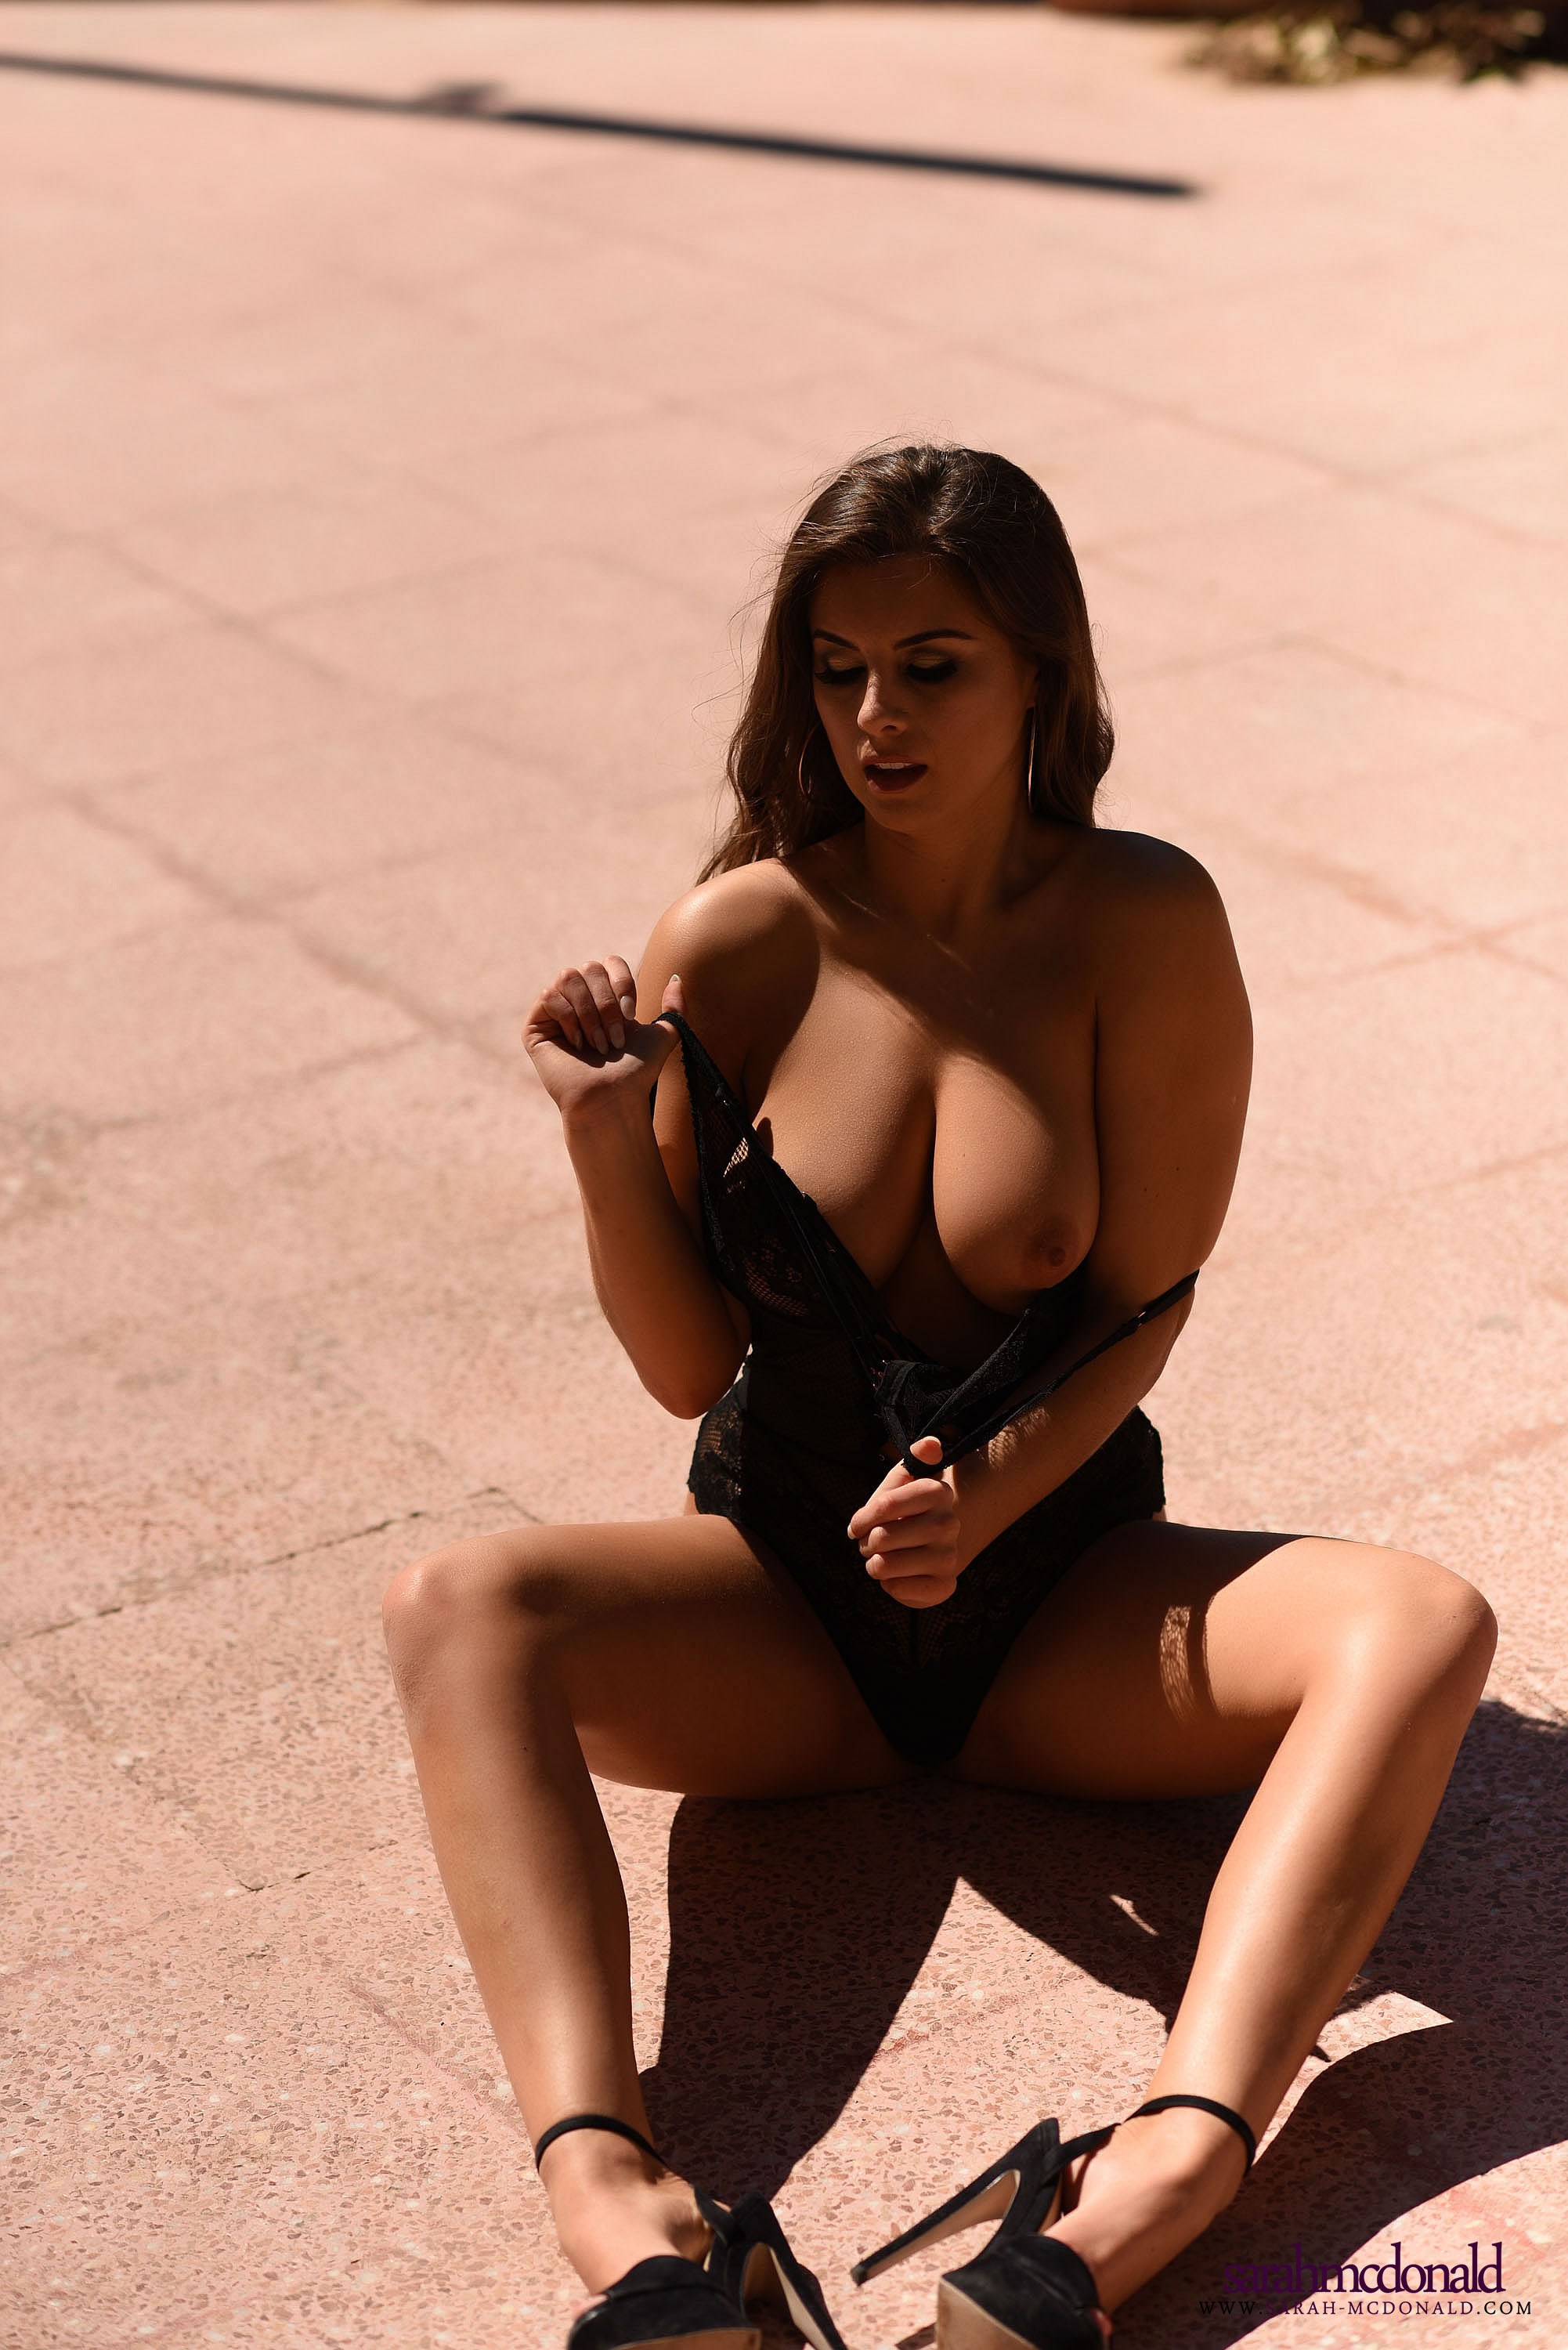 Gorgeous brunette lying topless outdoors